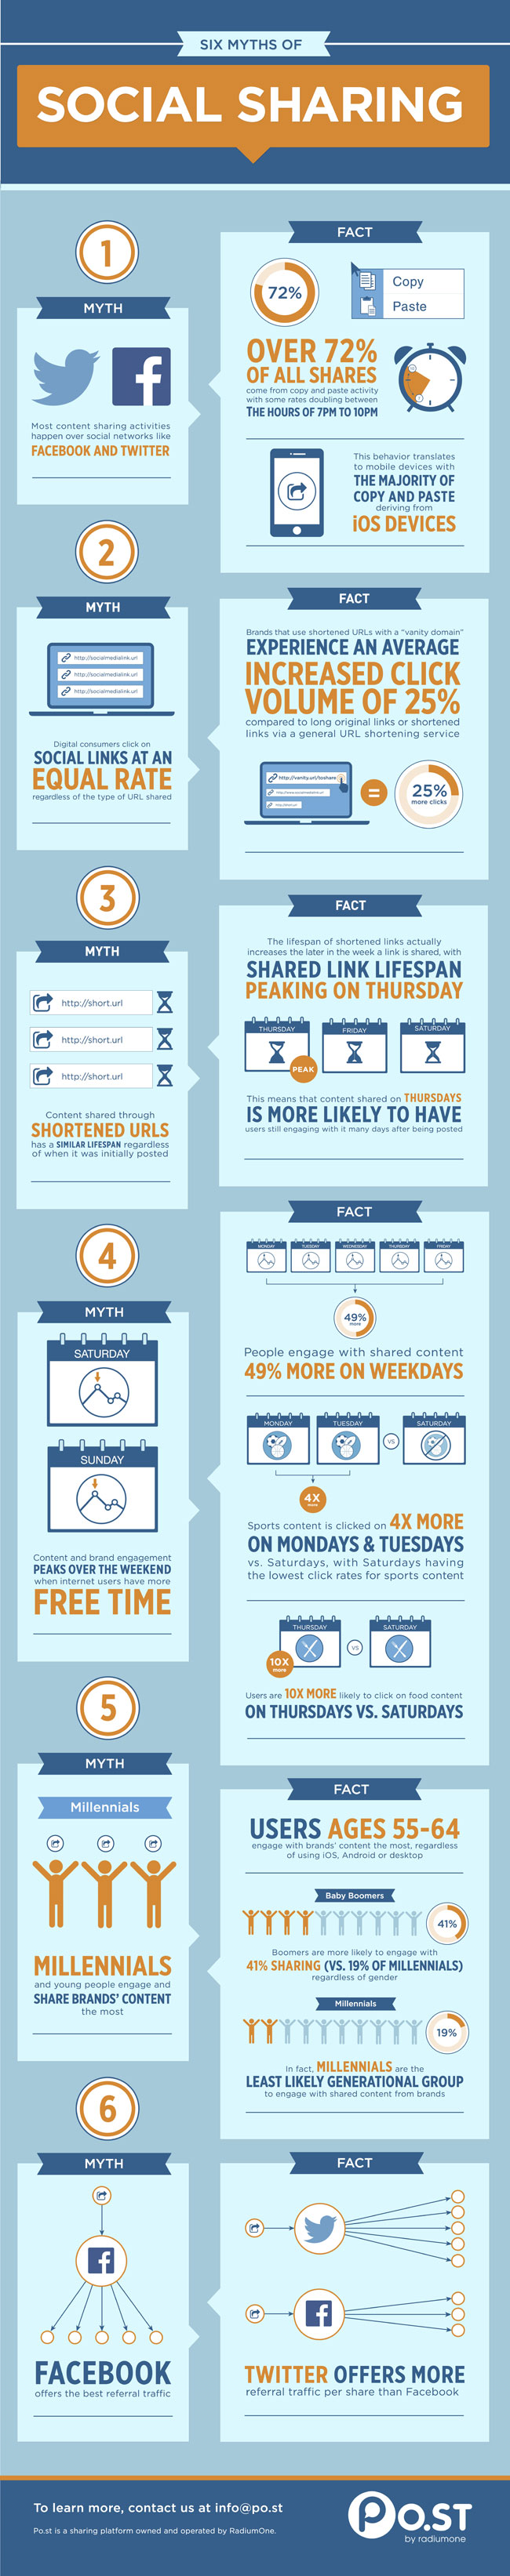 Infographic: 6 Myths of Social Sharing